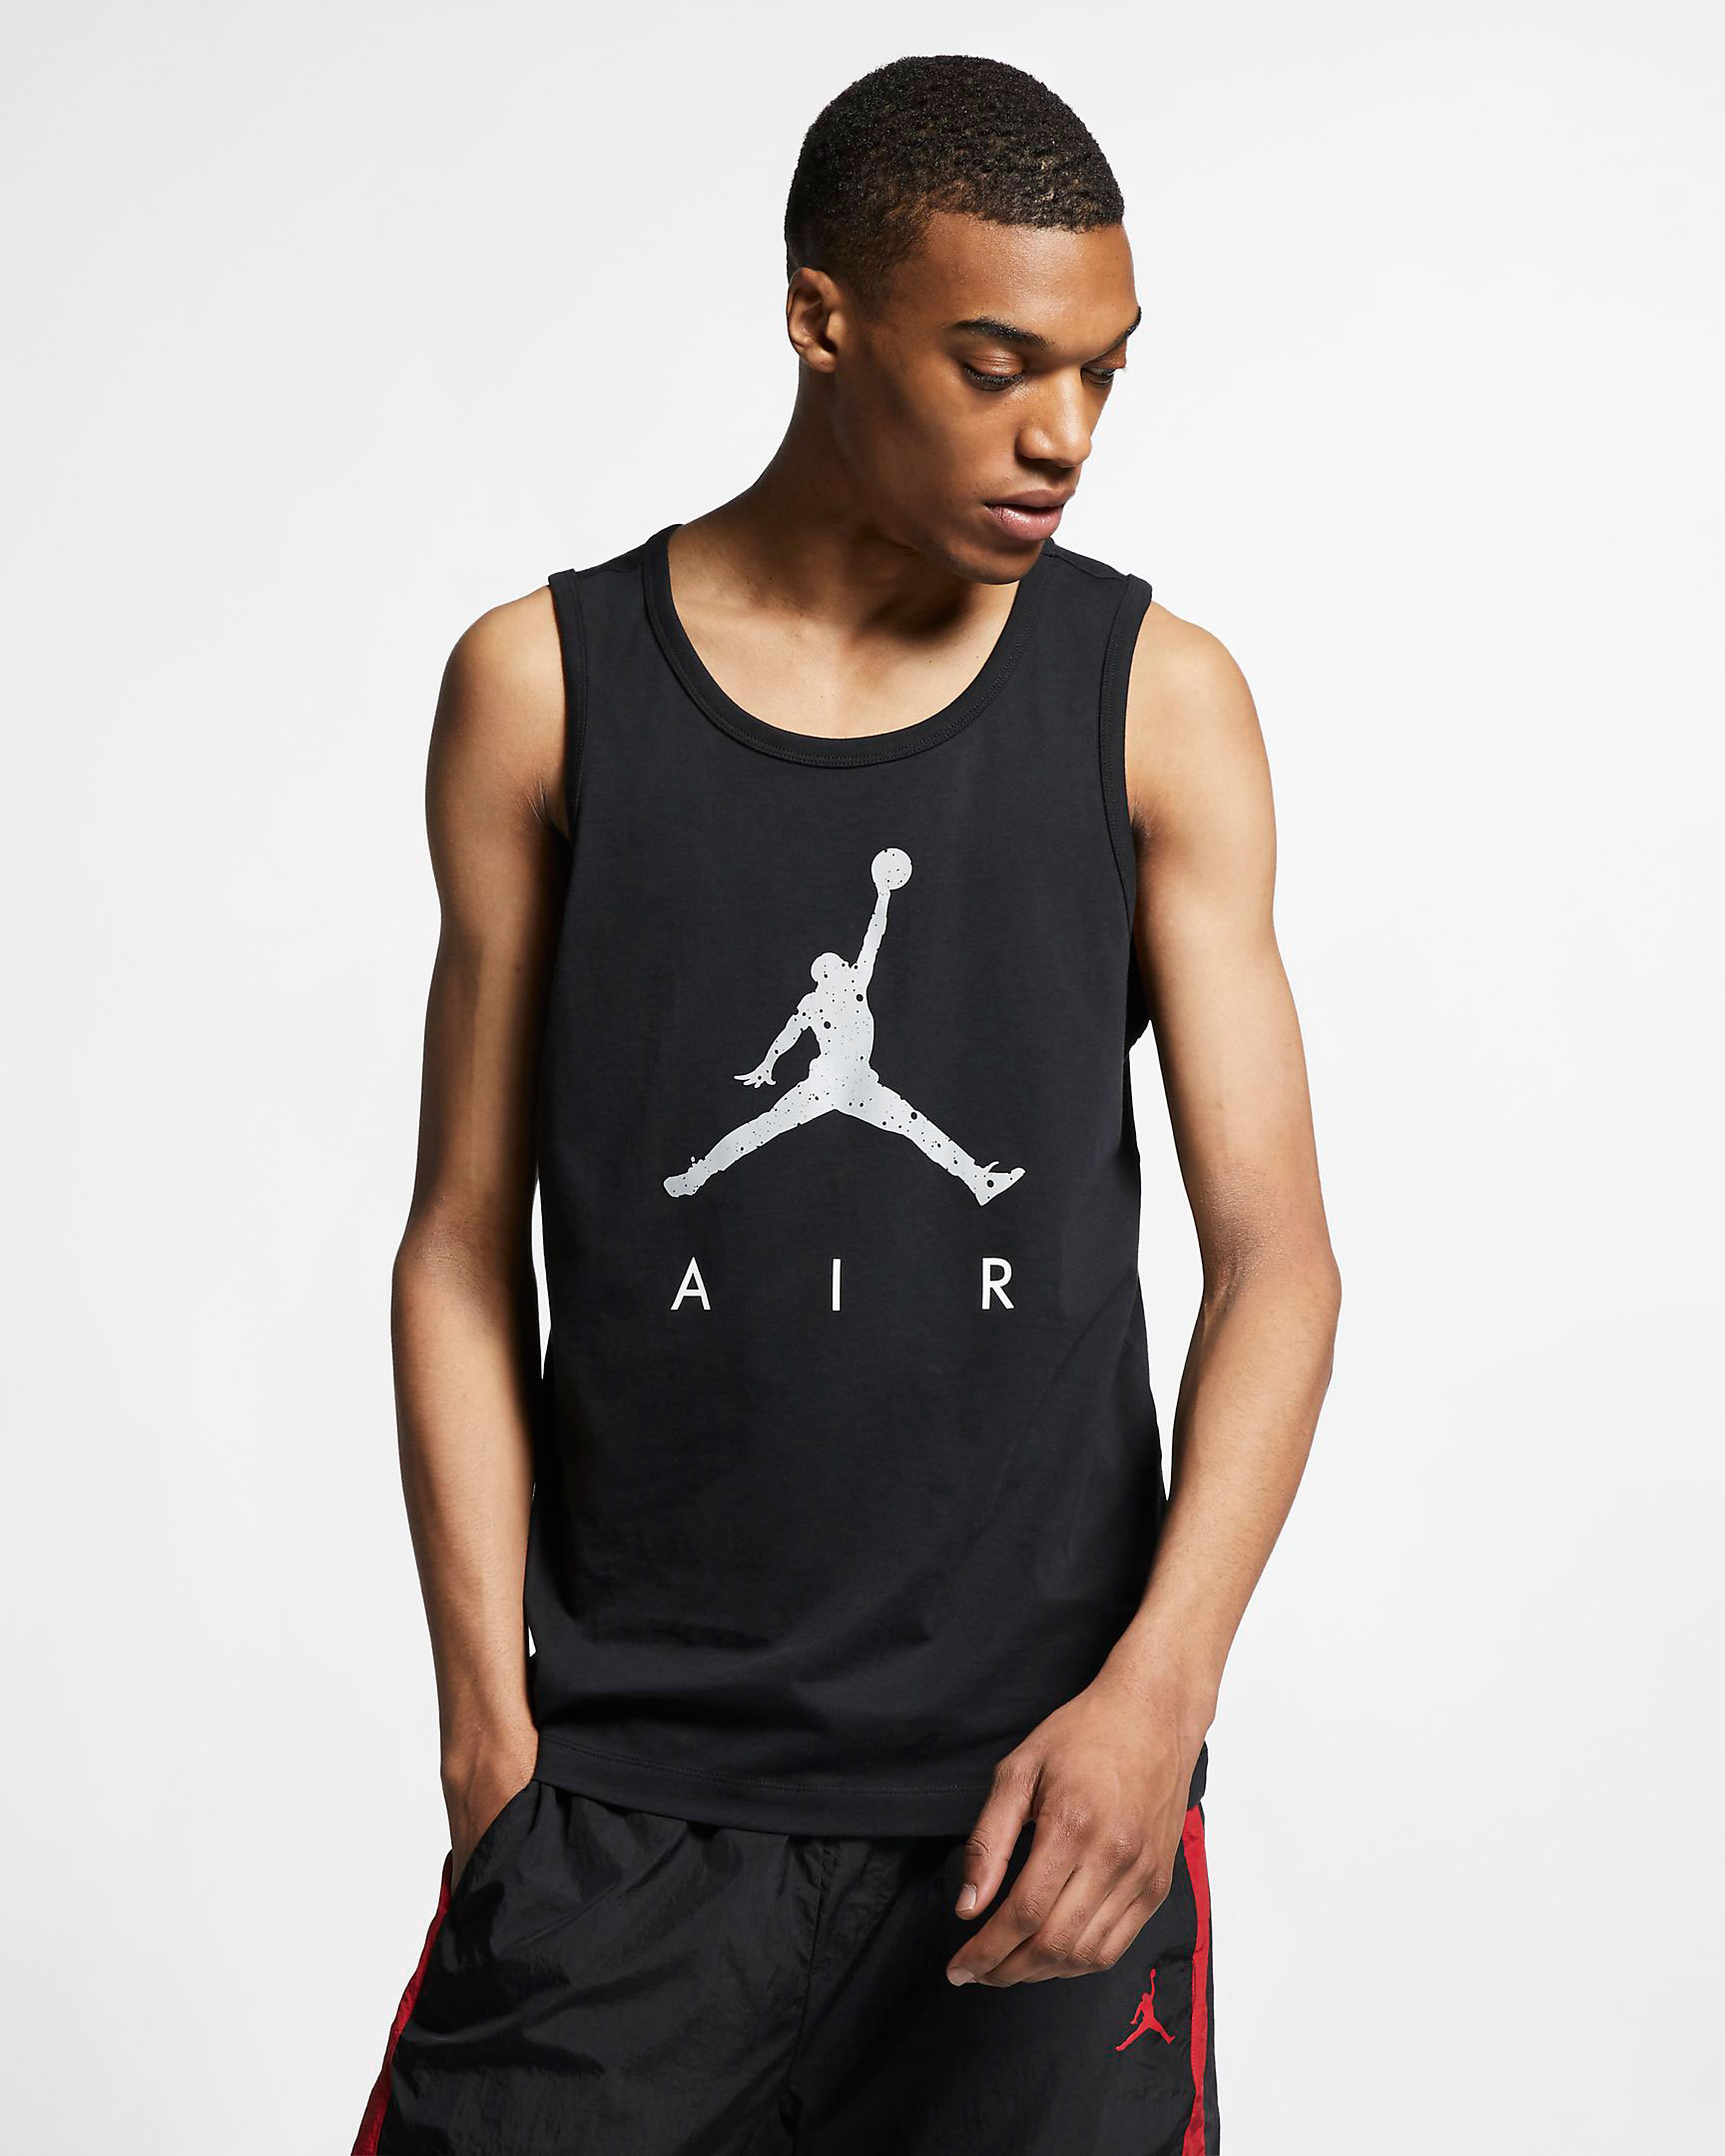 air-jordan-4-og-bred-cement-tank-top-match-1